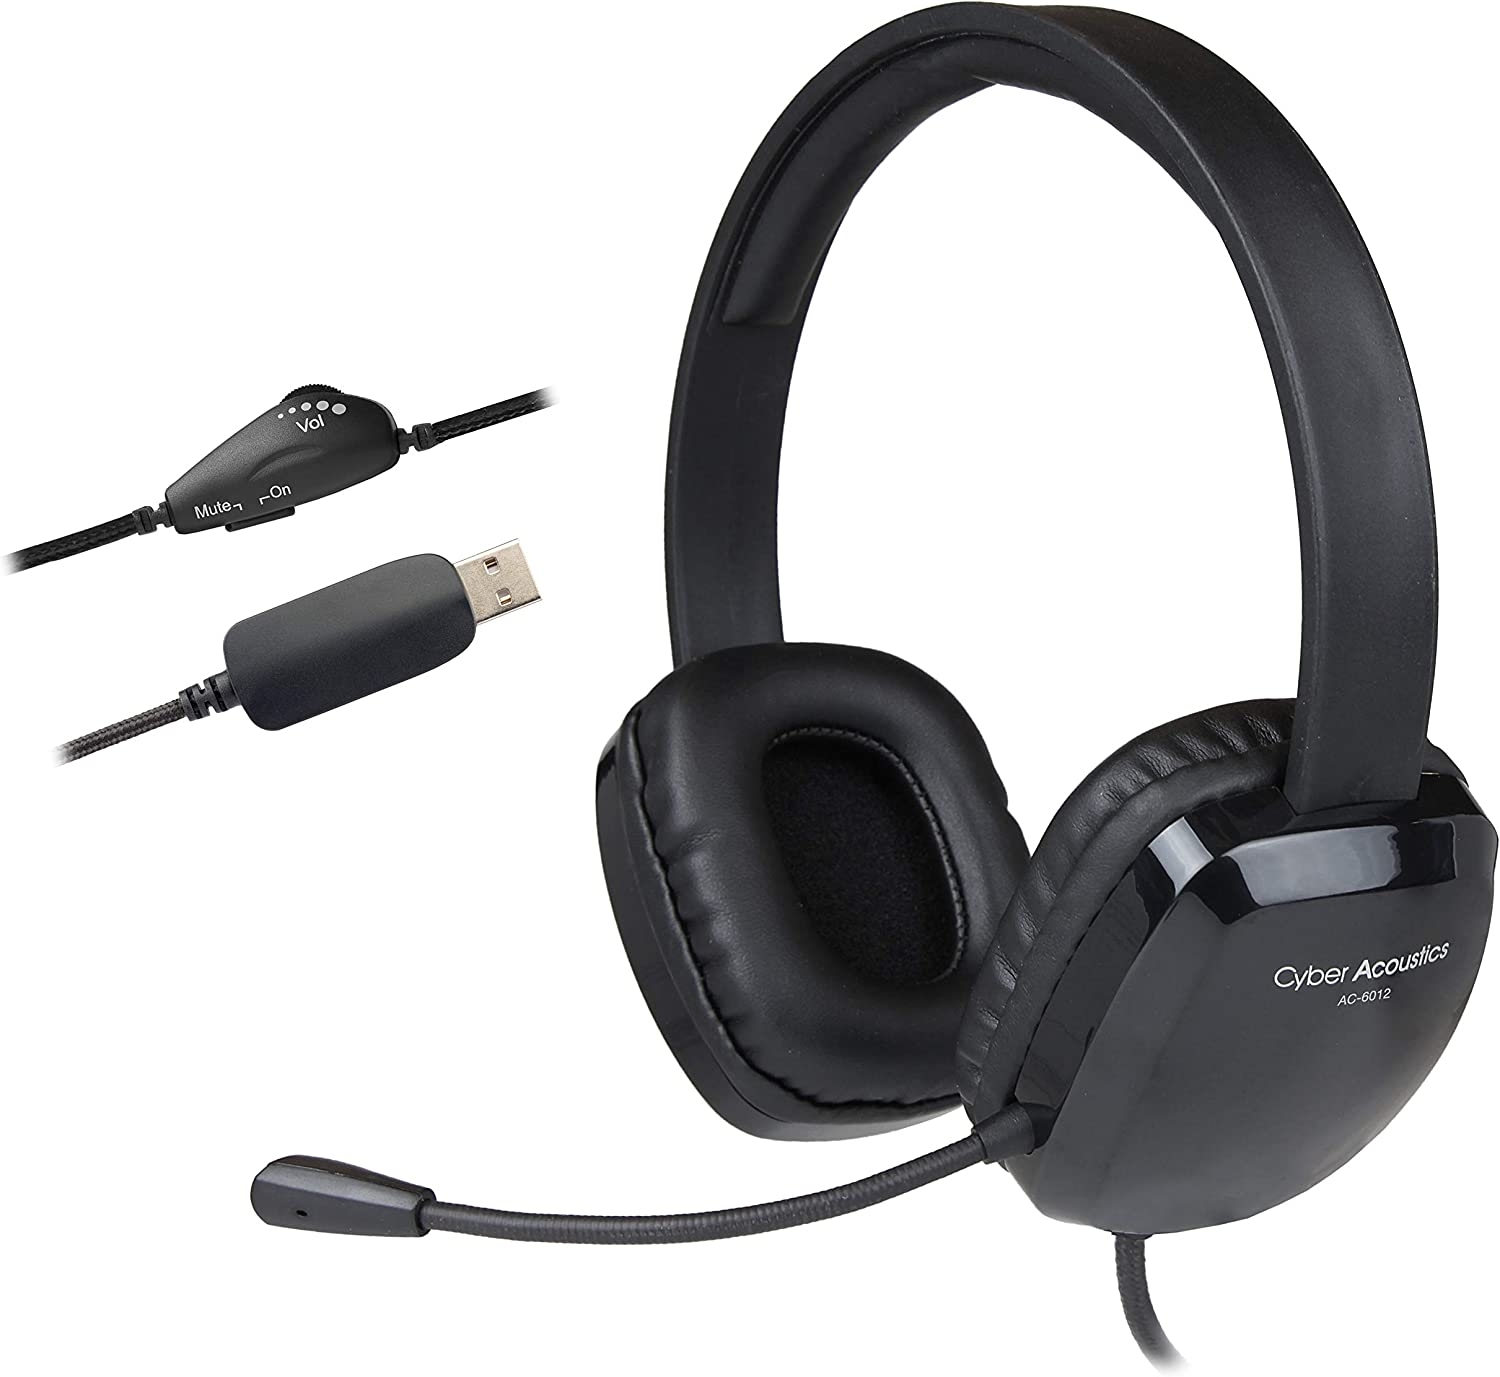 Cyber Acoustics USB Stereo Headset with Headphones and Noise Cancelling Microphone for PCs and Other USB Devices in The Office, Classroom or Home (AC-6012)